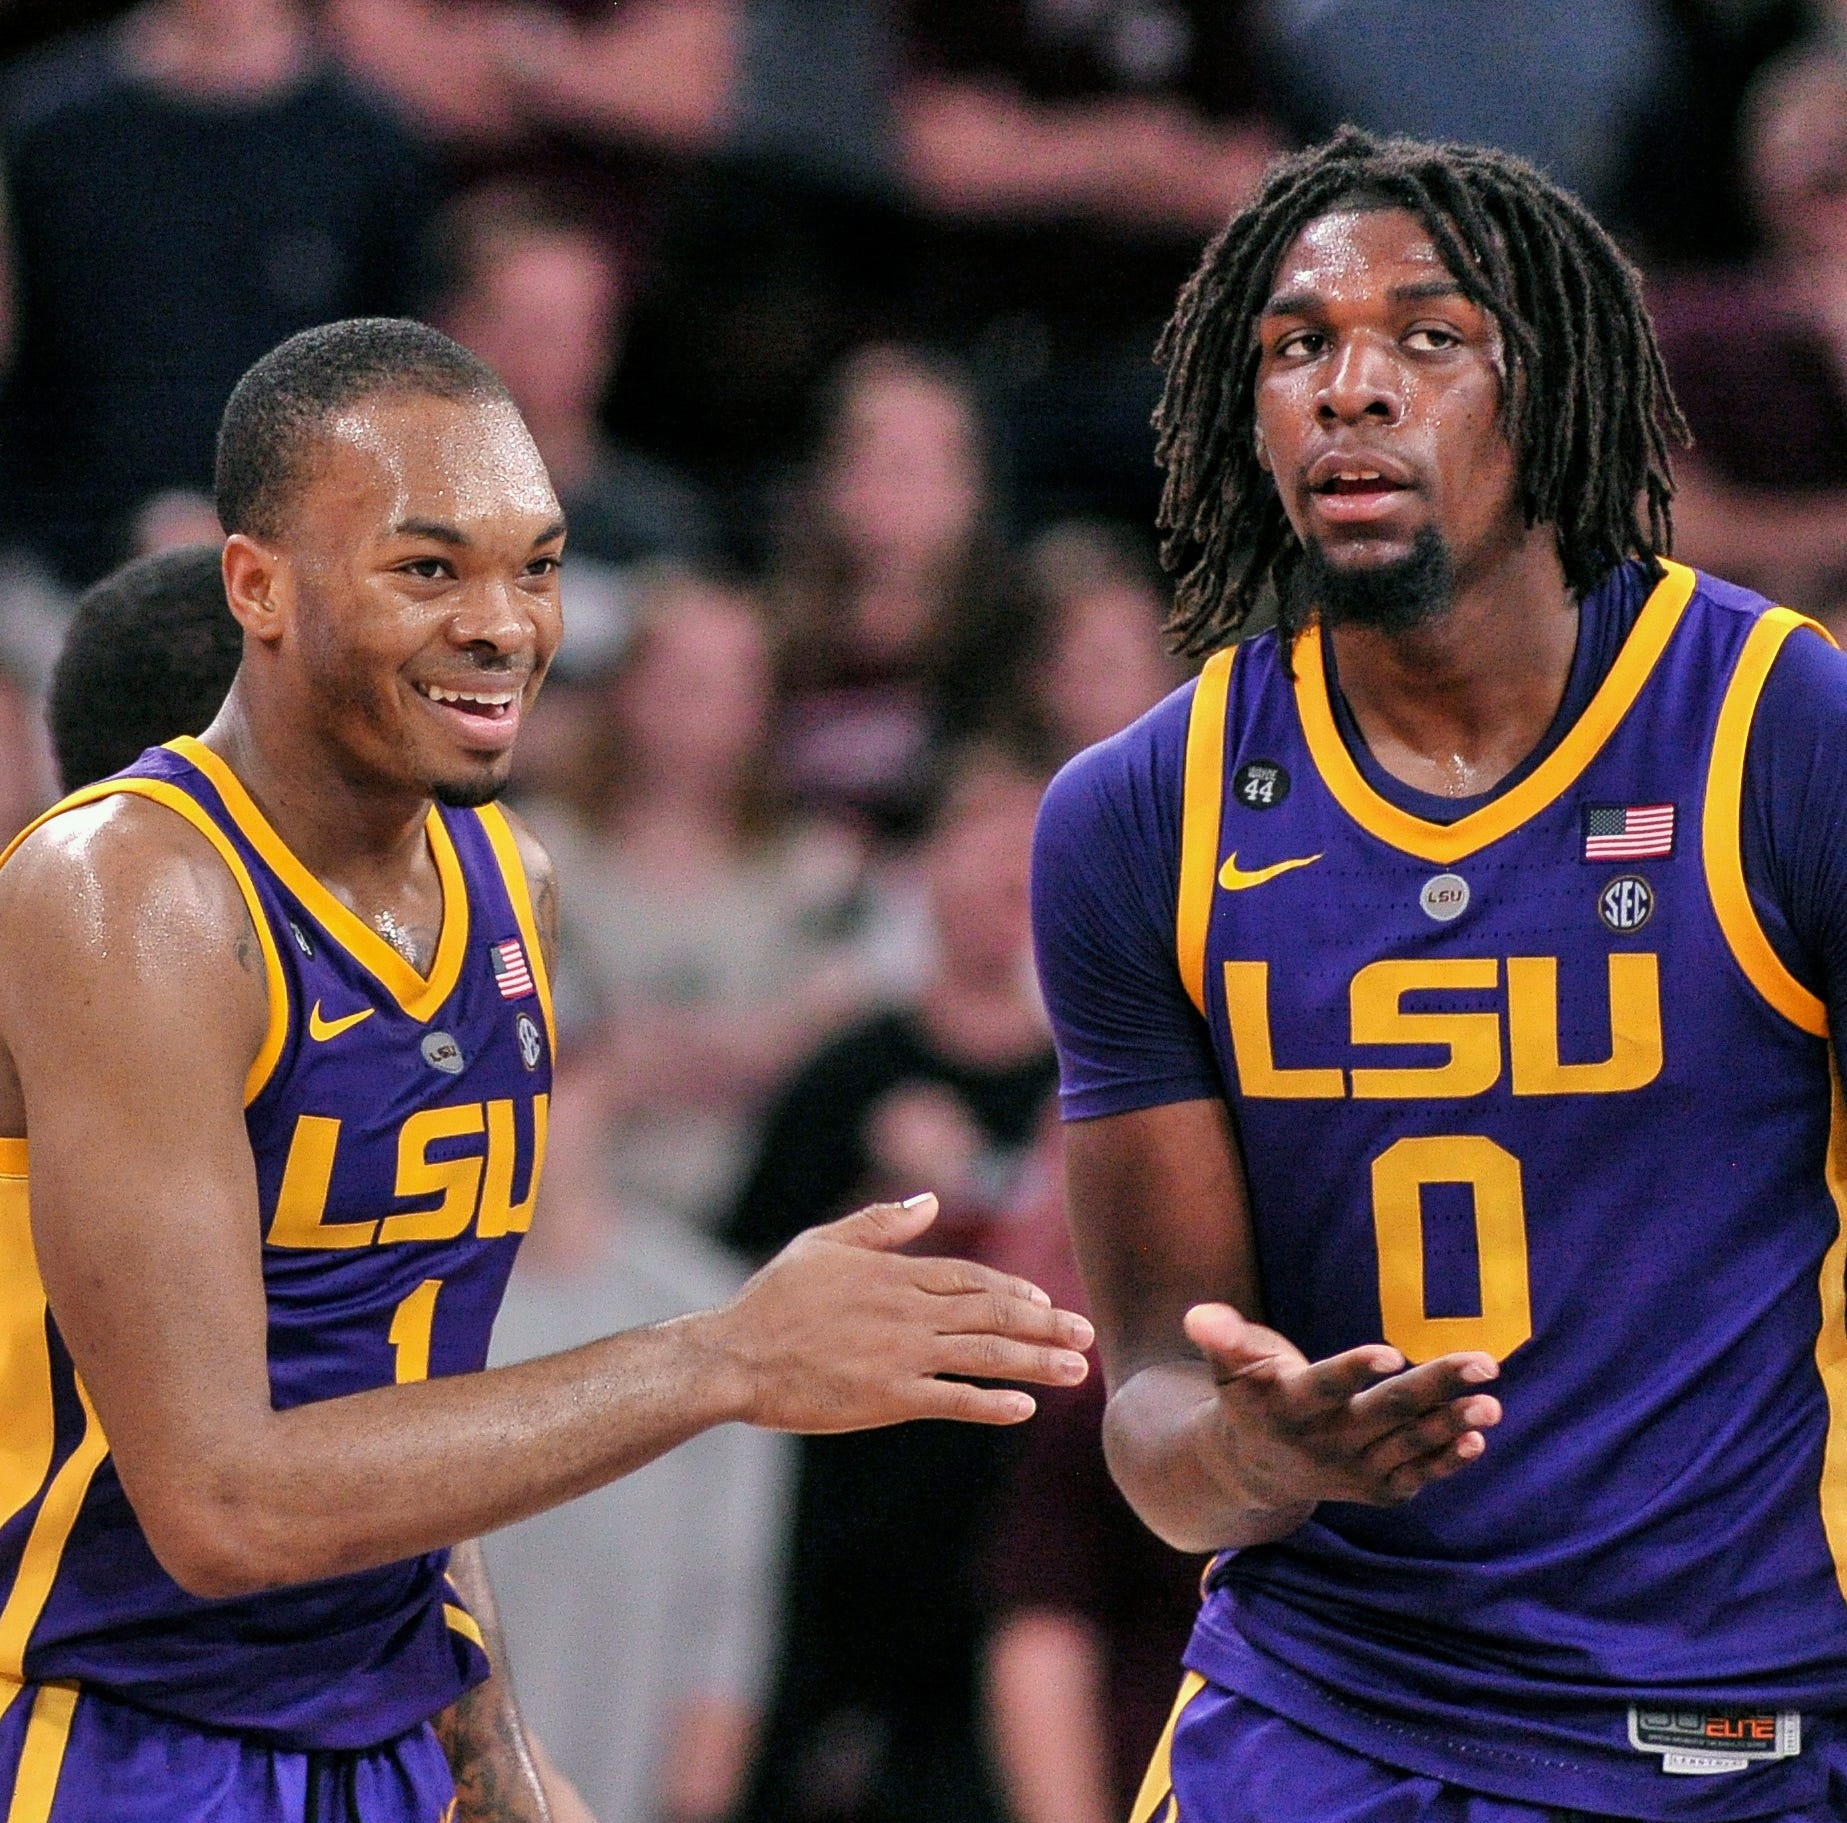 Big man Naz Reid can finesse you, but lately his inside moves have kept LSU dominant